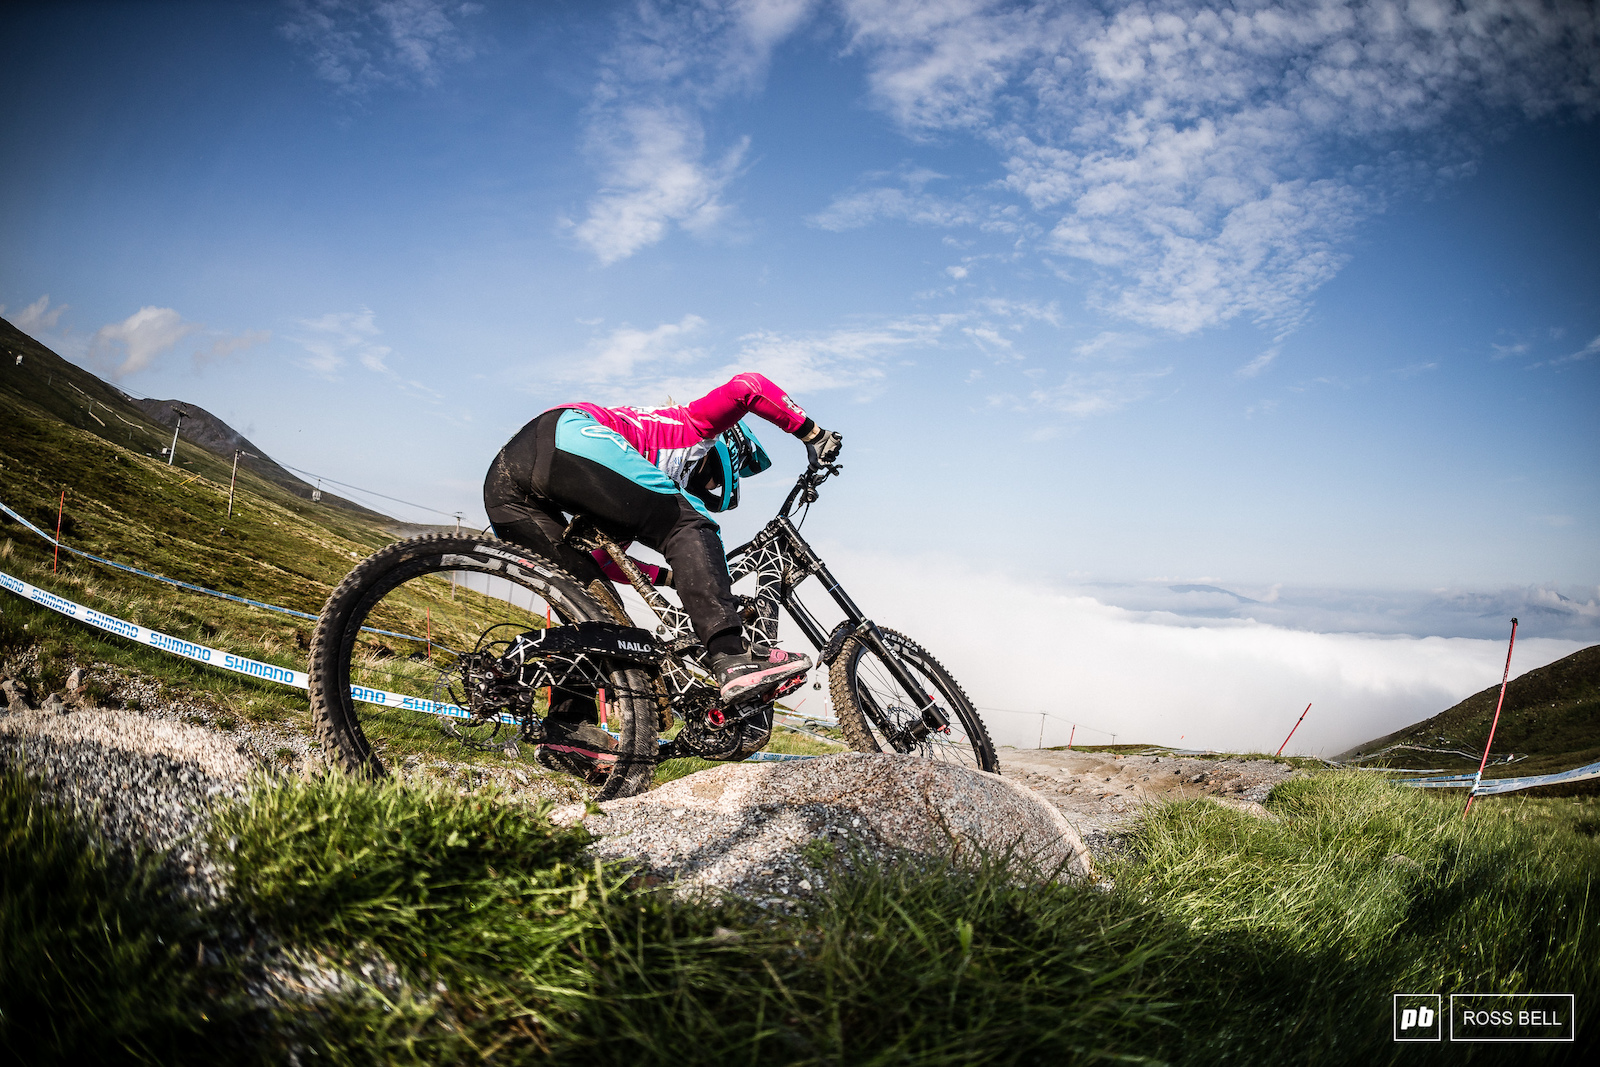 Last years winner Tracey Hannah took a bit of a distant 5th she ll be hungry to cut that deficit next week in Leogang.